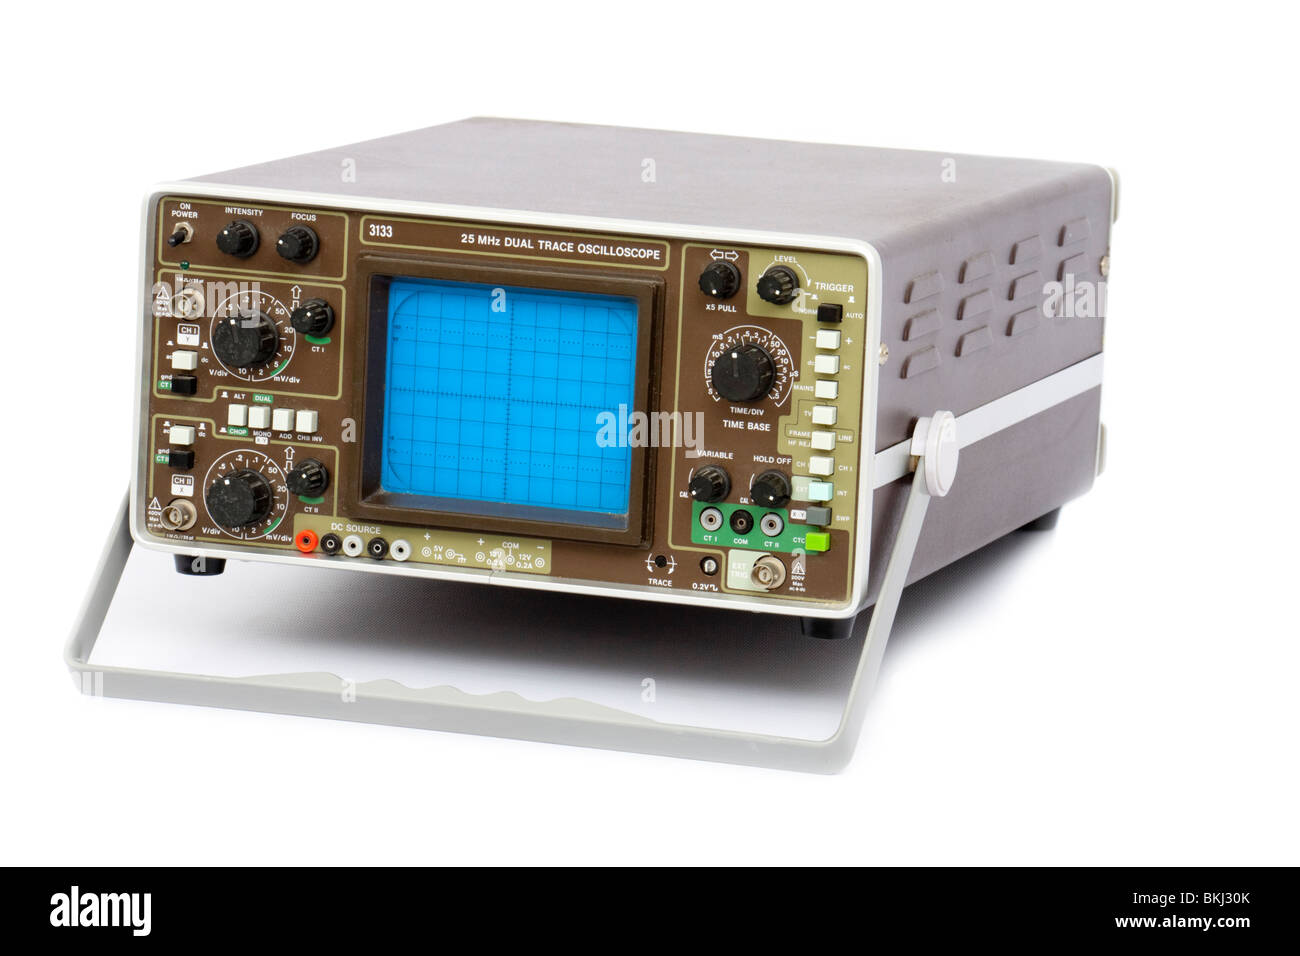 Vintage 25Mhz Dual Trace Oscilloscope electronic test equipment (model 3133), isolated on white background - Stock Image